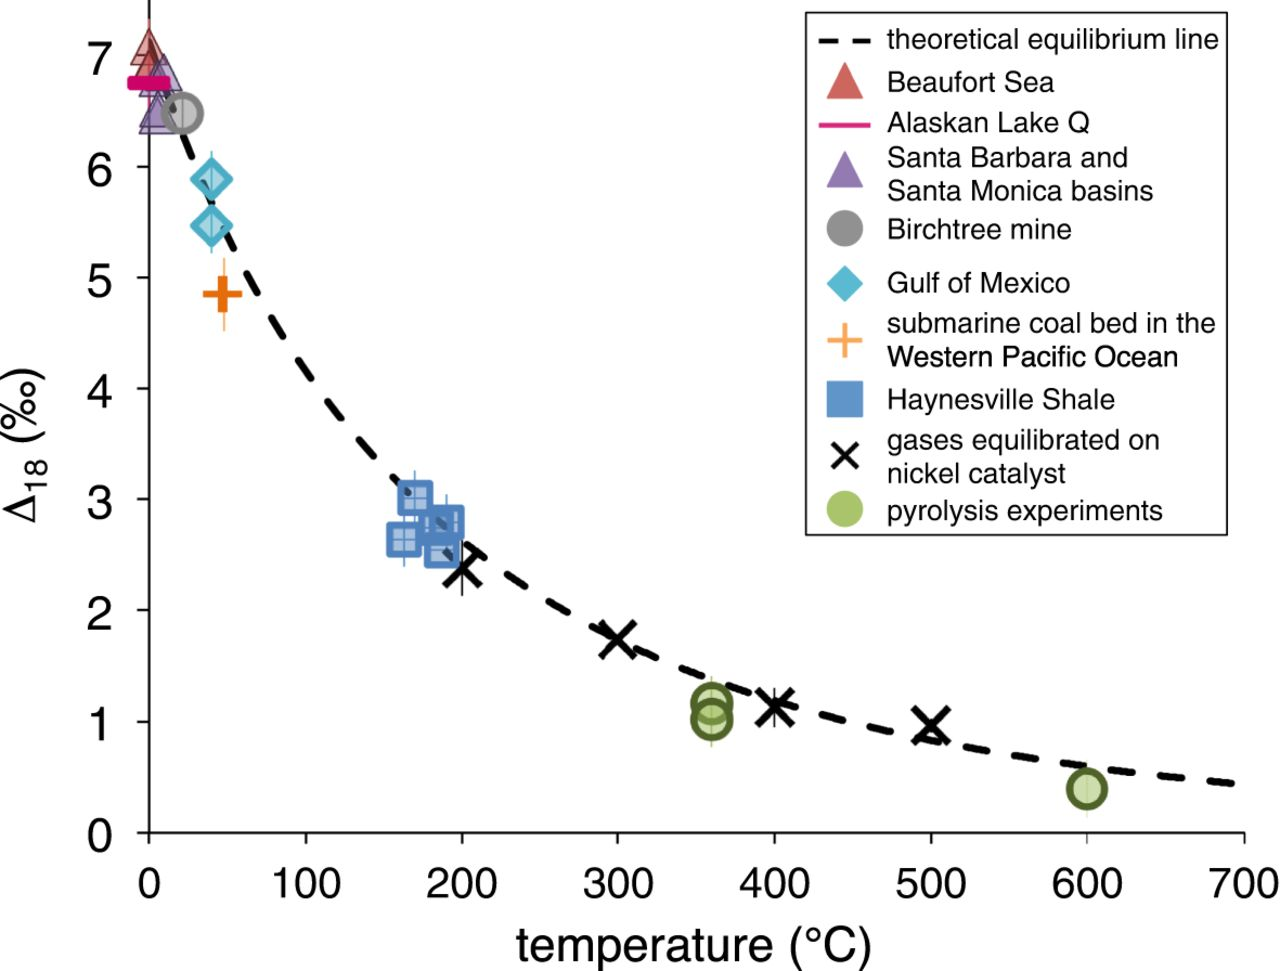 The utility of methane clumped isotopes to constrain the